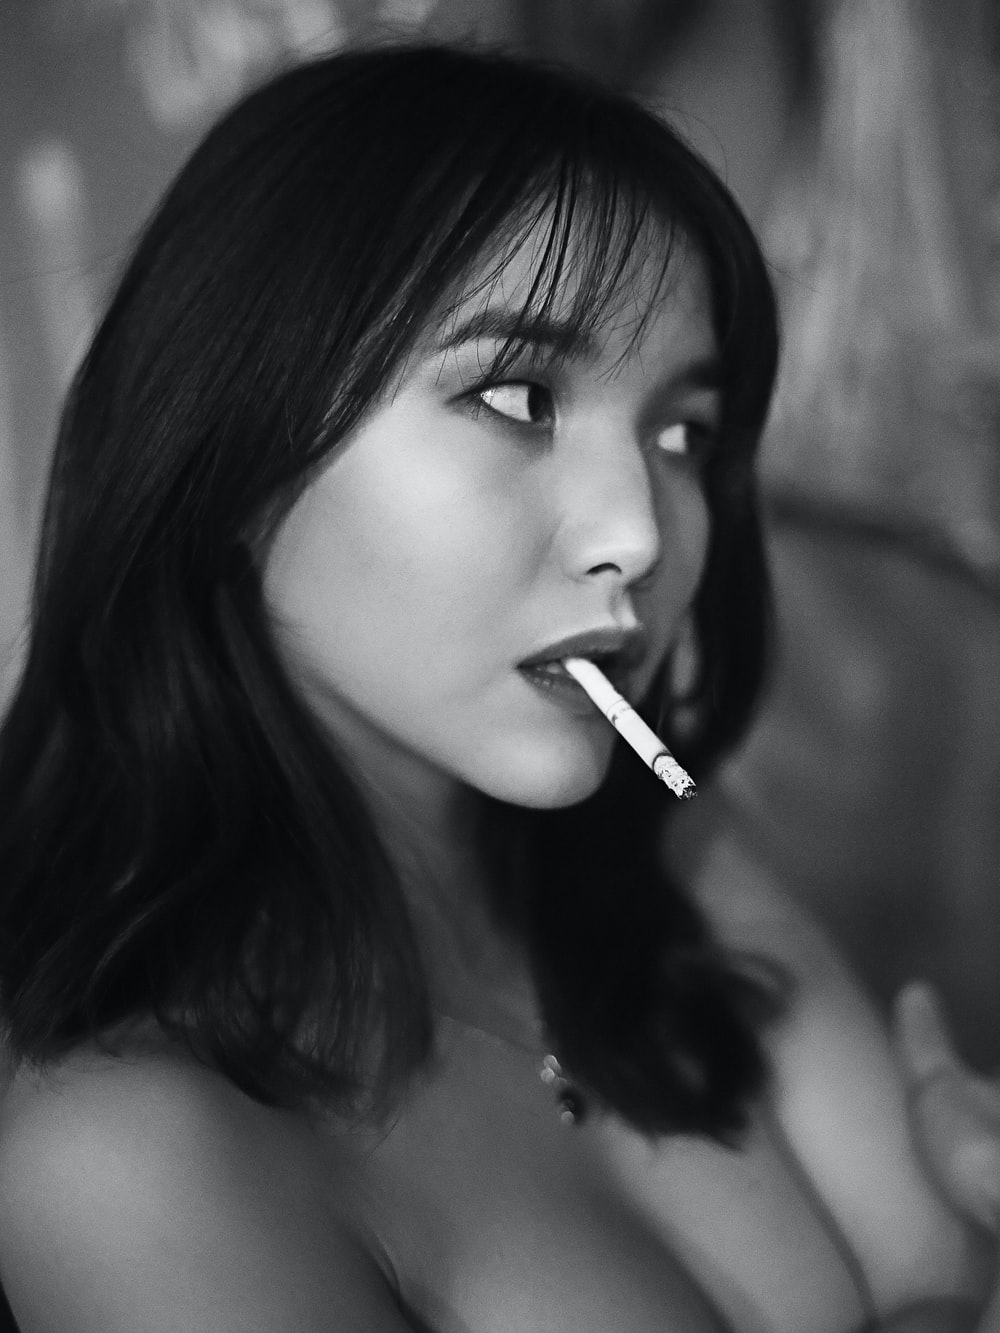 woman with cigarette on mouth